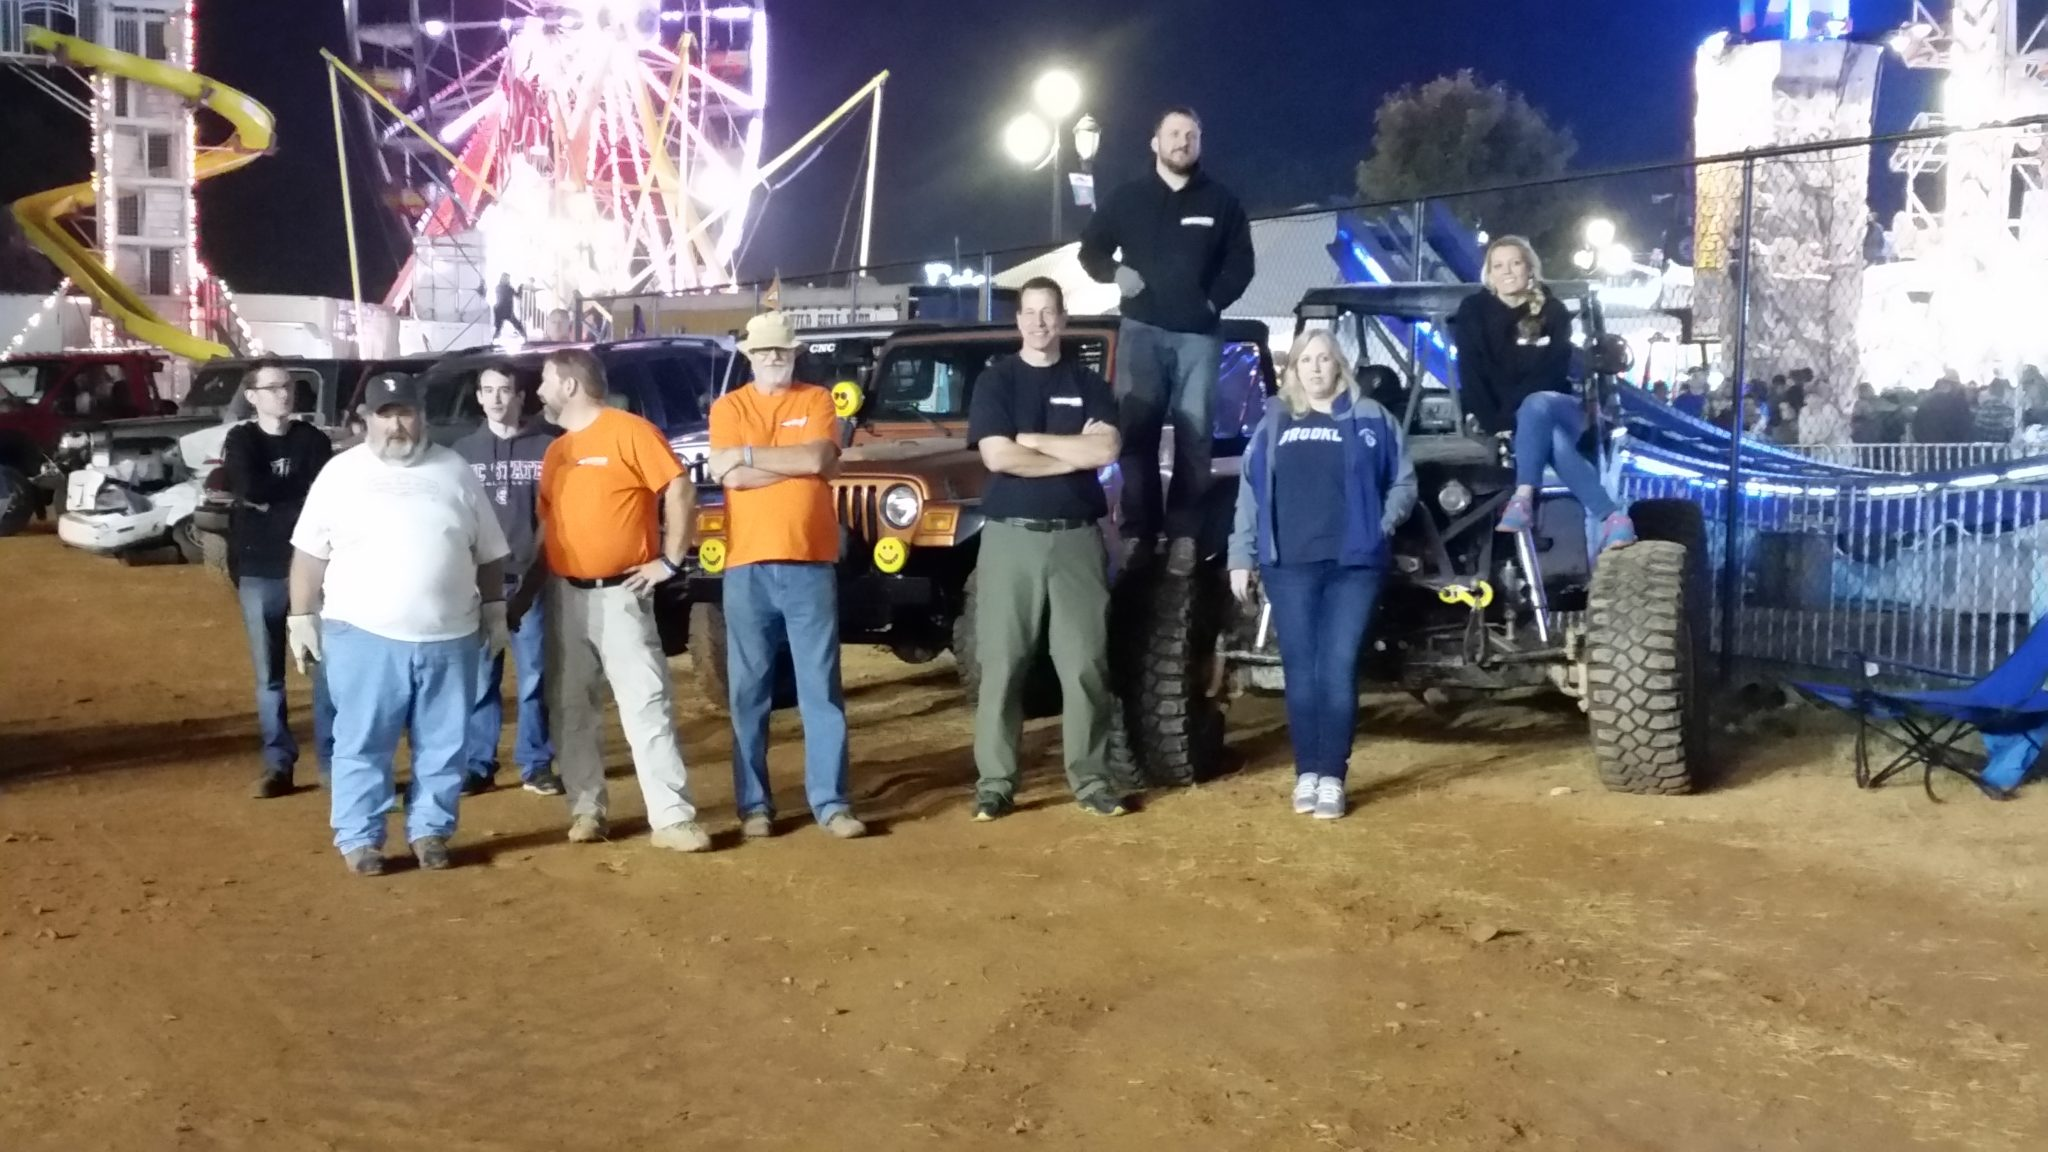 10/15 Demolition Derby- NC State Fair